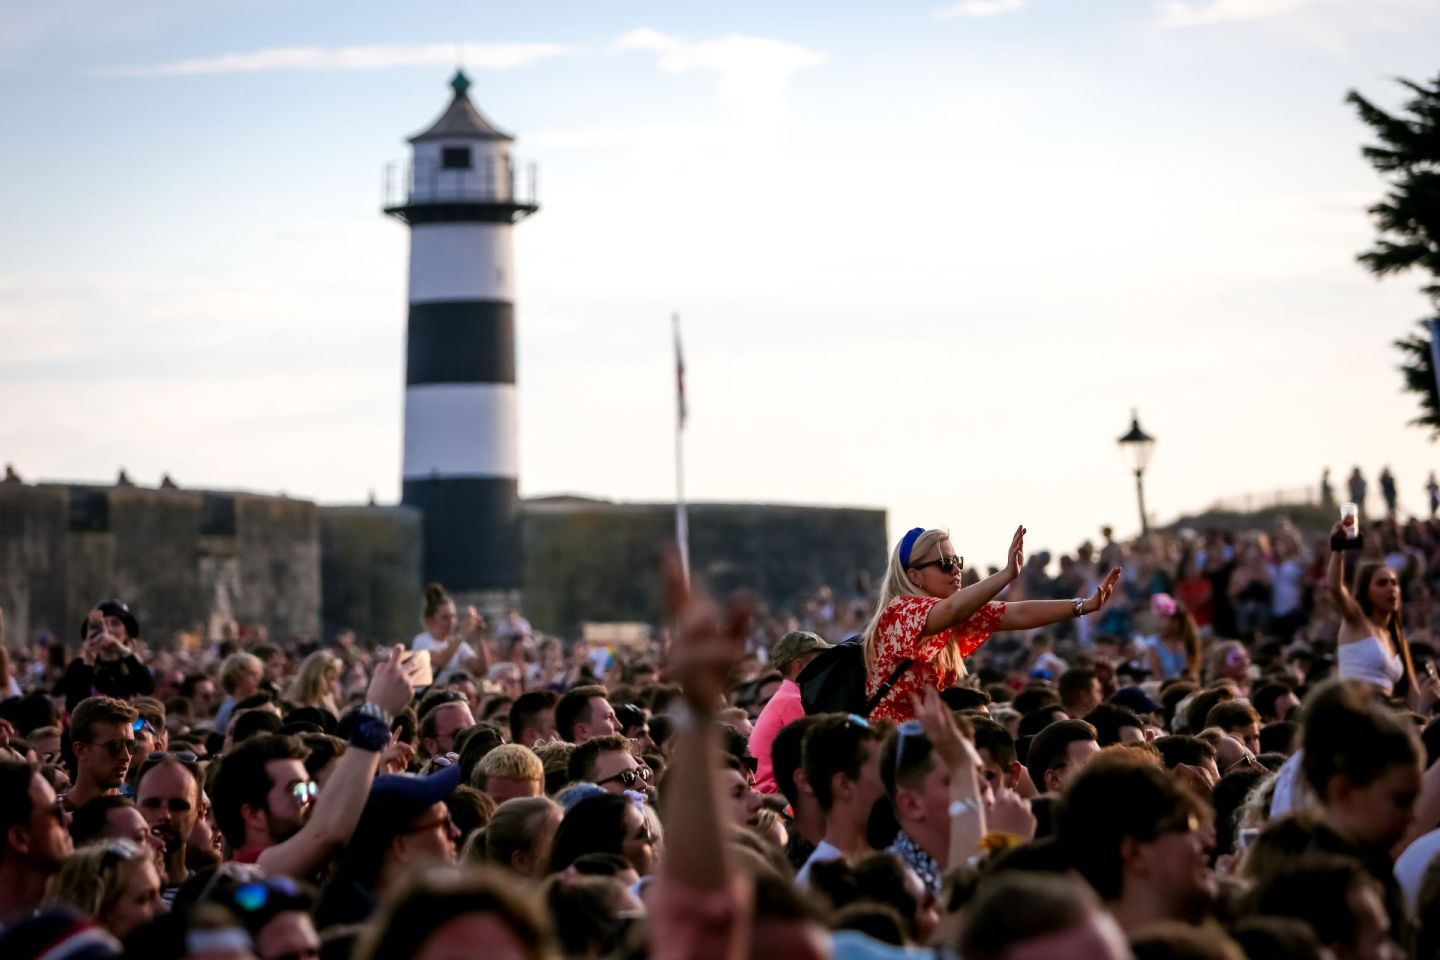 Victorious Festival roundup